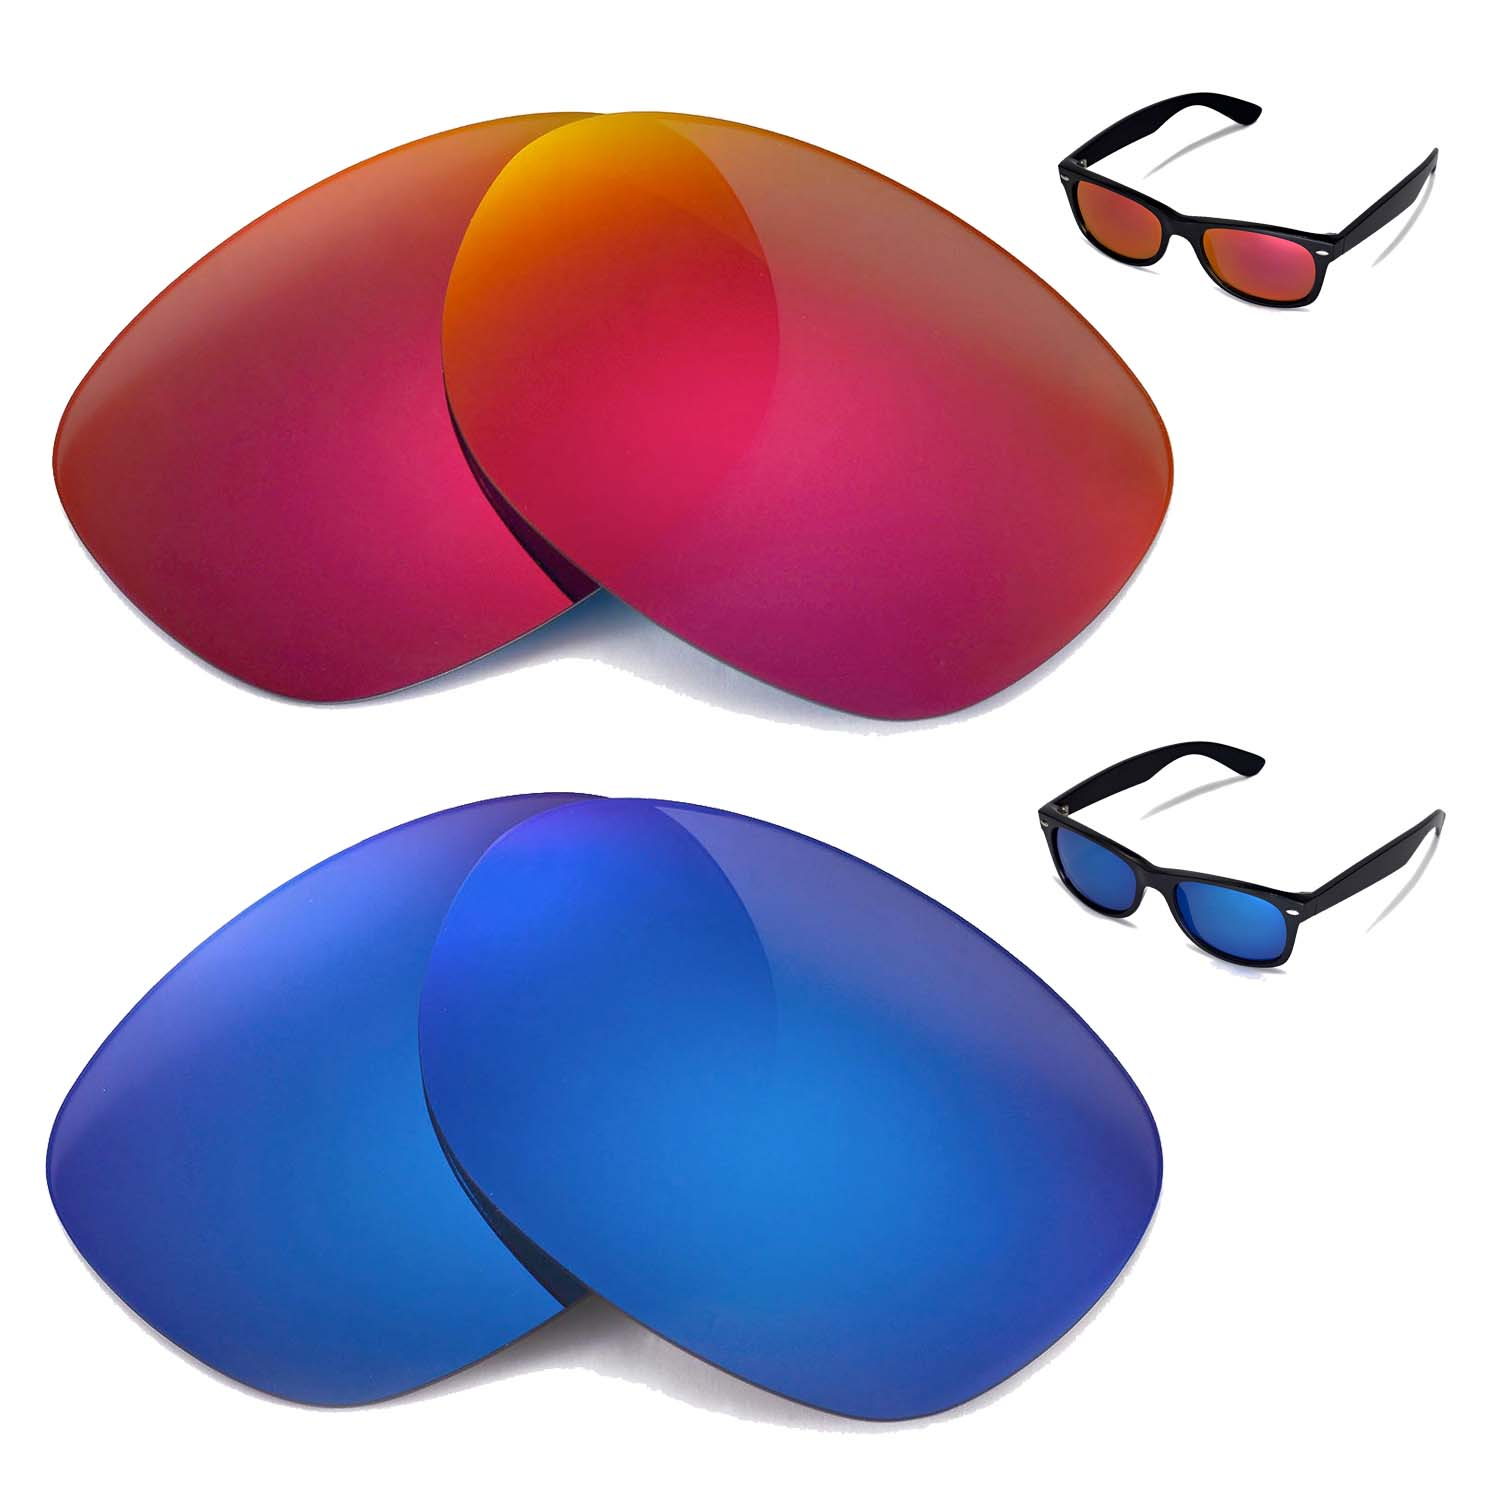 d53cebf25b Details about New WL Polarized Fire Red + Ice Blue Lenses For Ray-Ban  Wayfarer RB2132 52mm